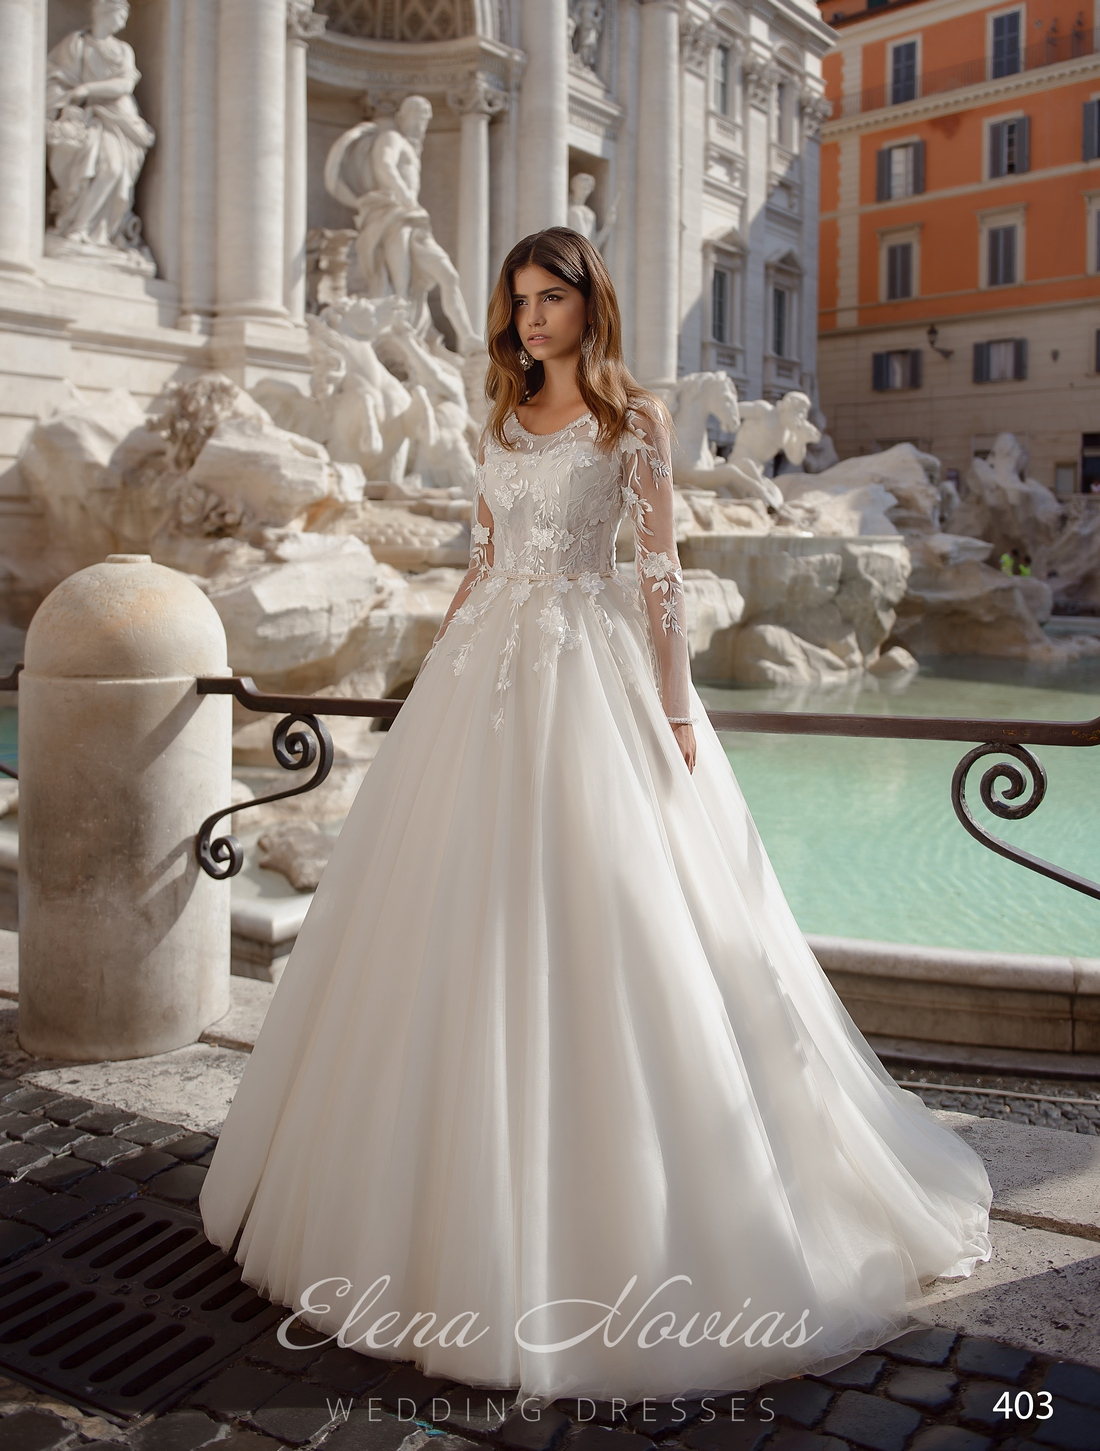 Wedding dress wholesale 403